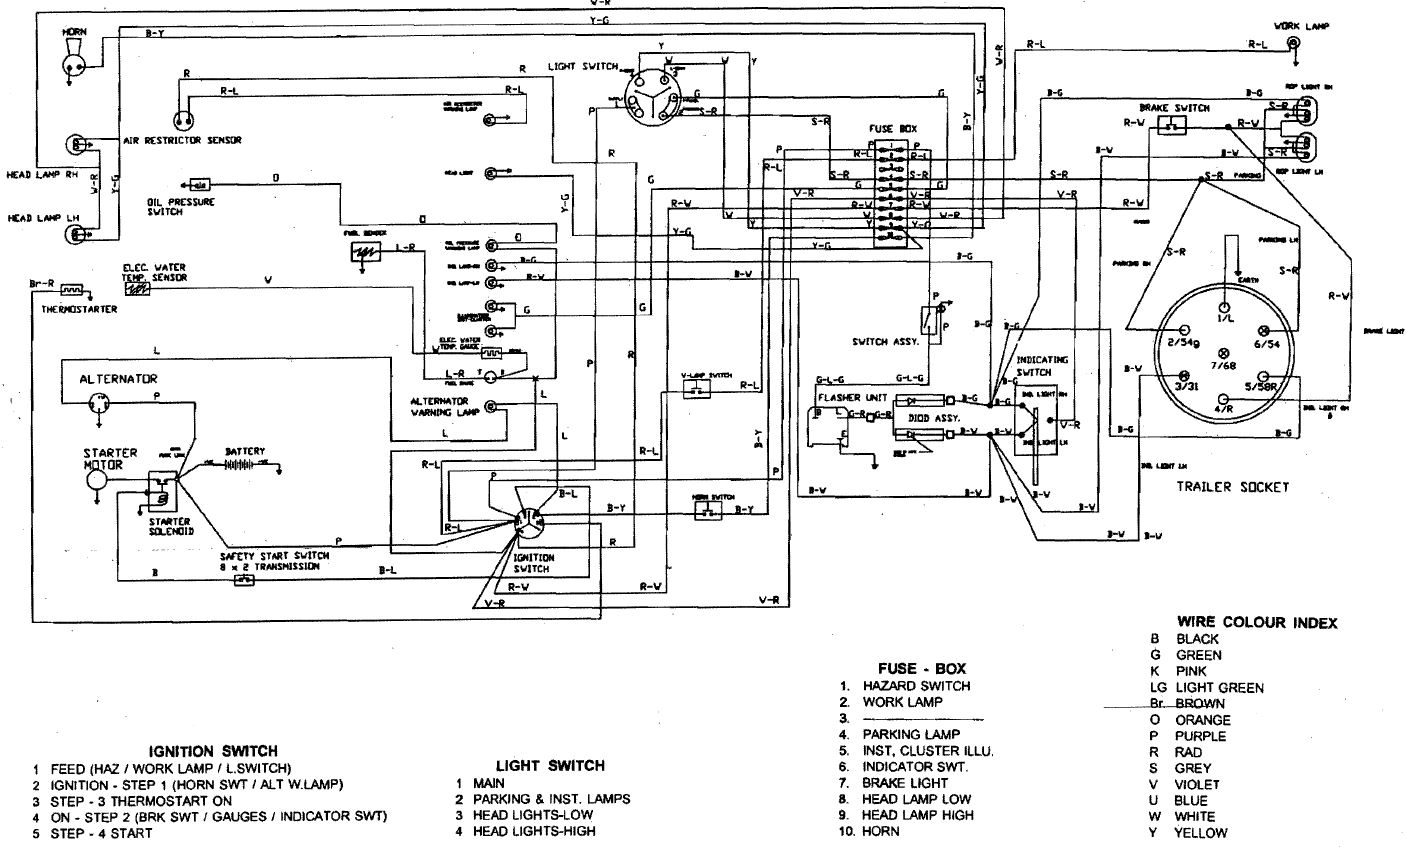 Simplicity Mower Wiring Schematics Tractor Building Ignition Switch Diagram